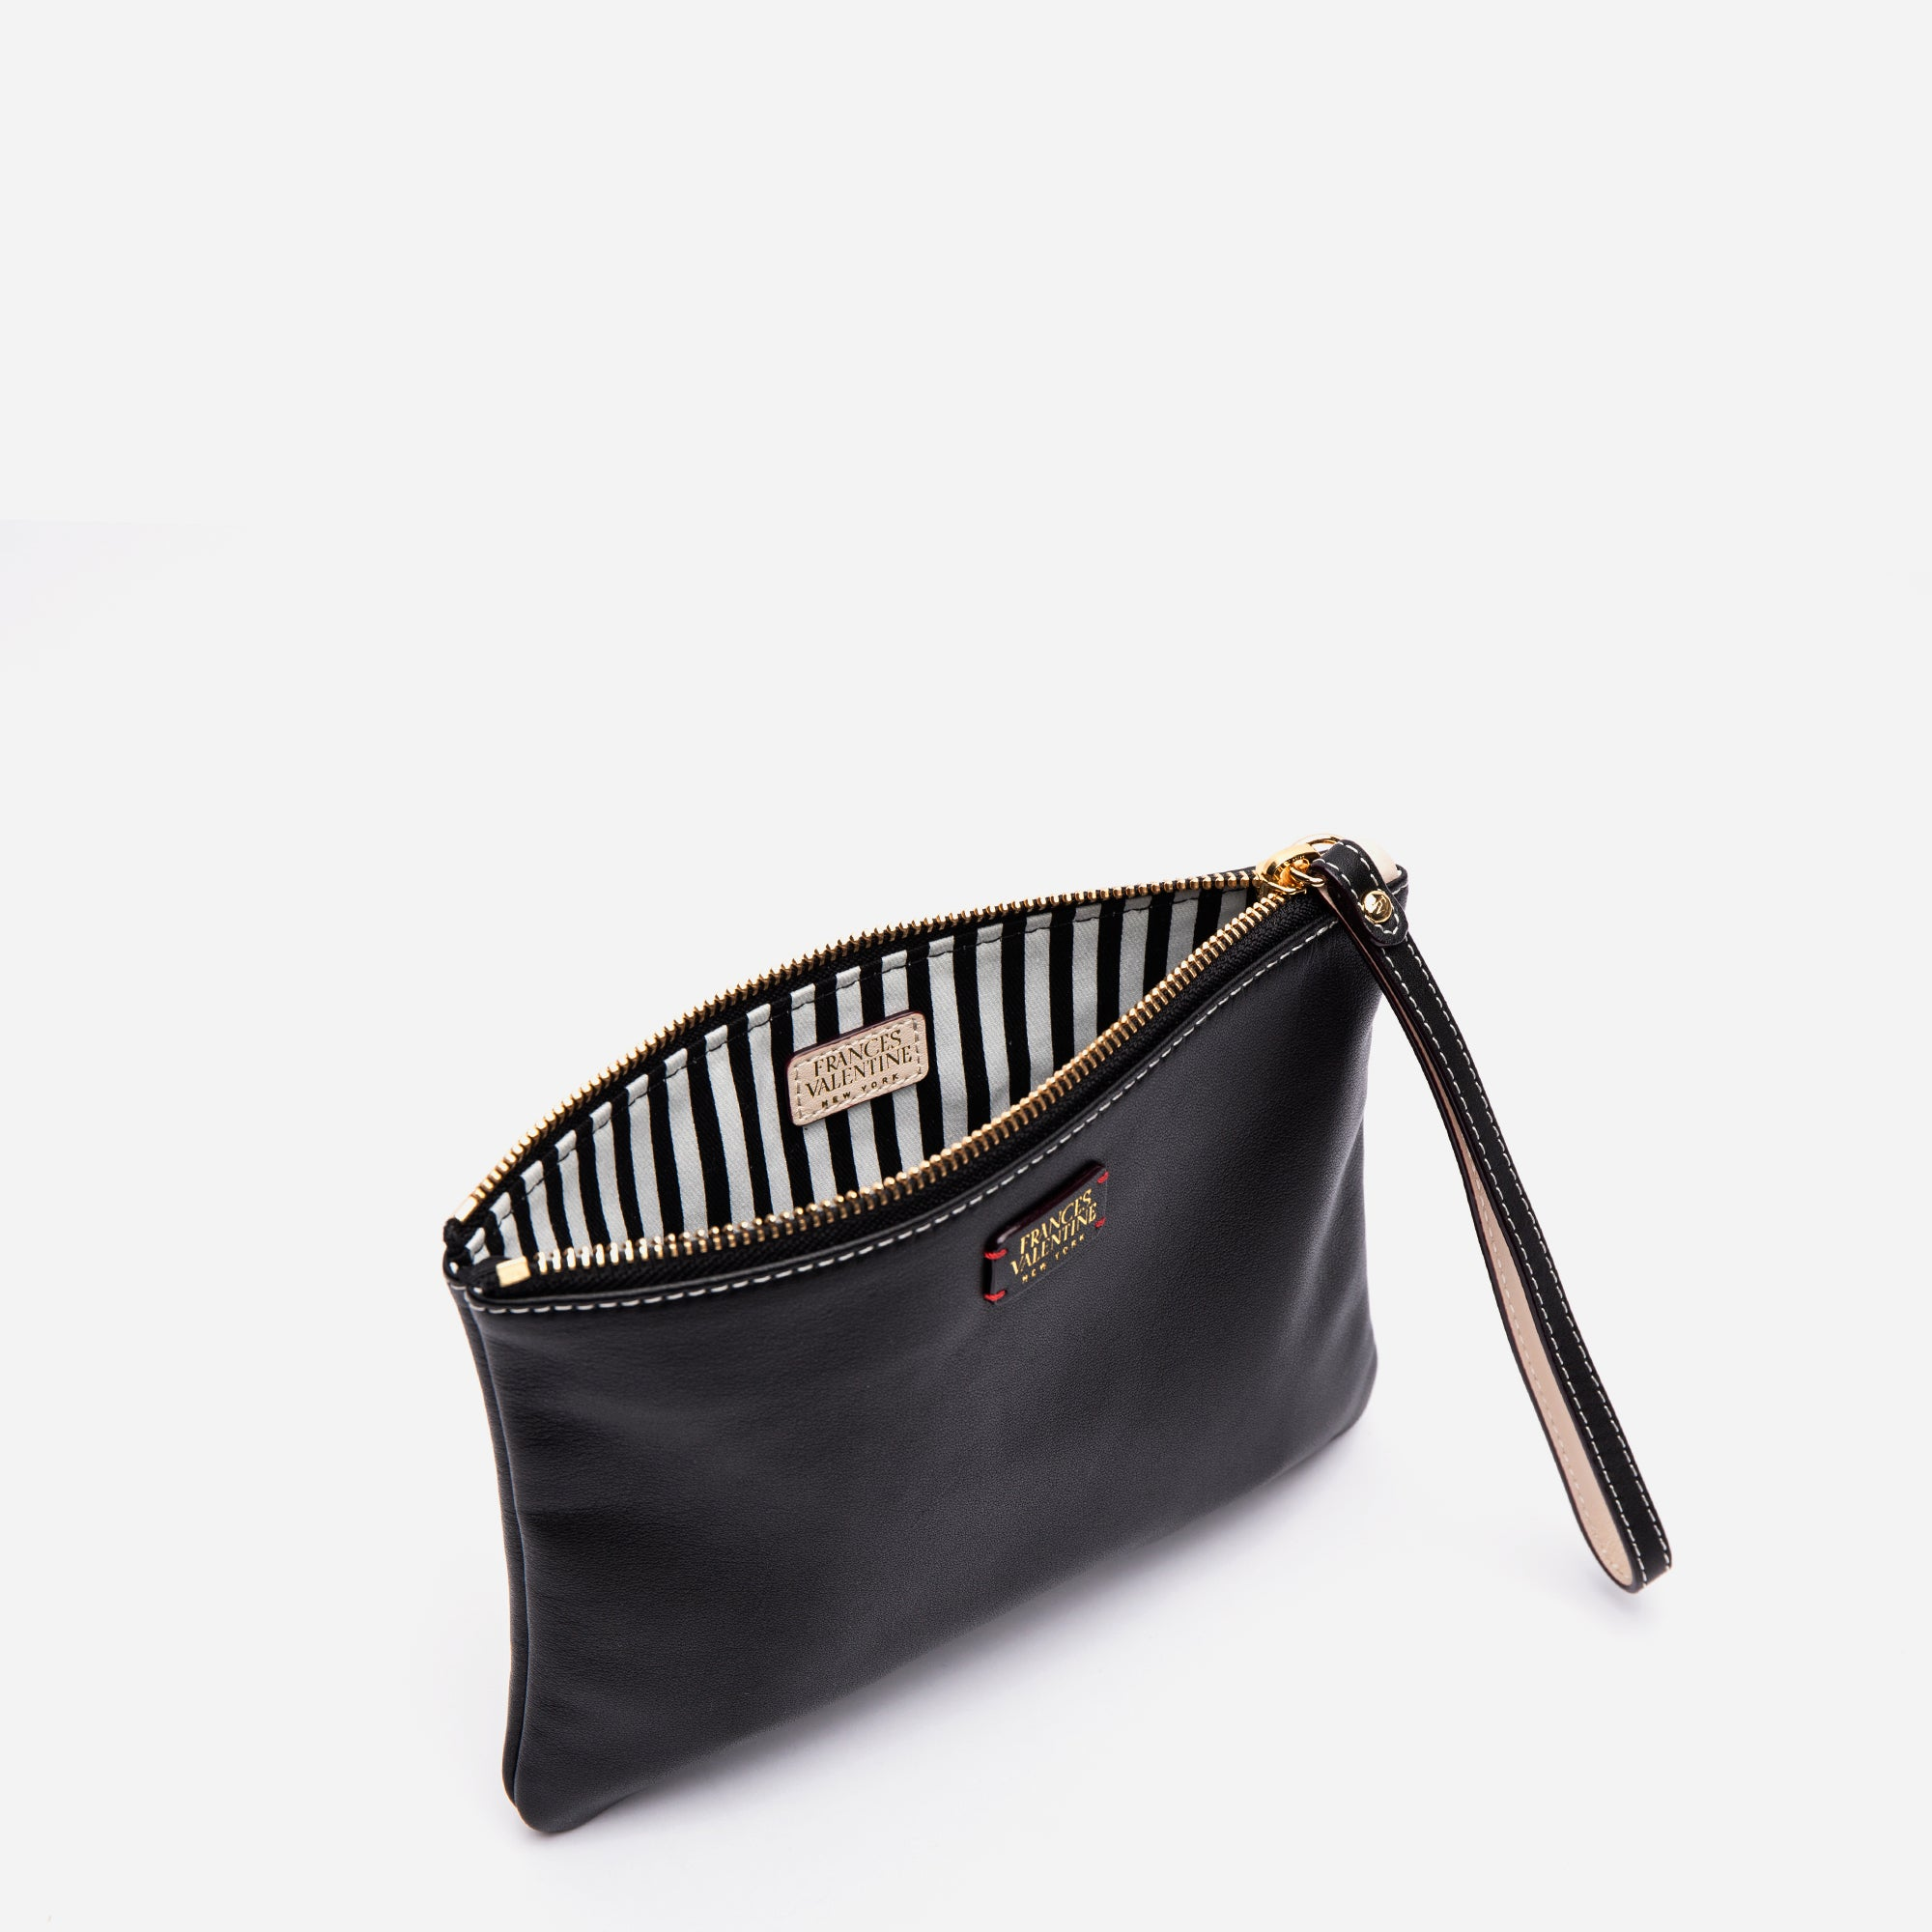 Wristlet Nappa Leather Black